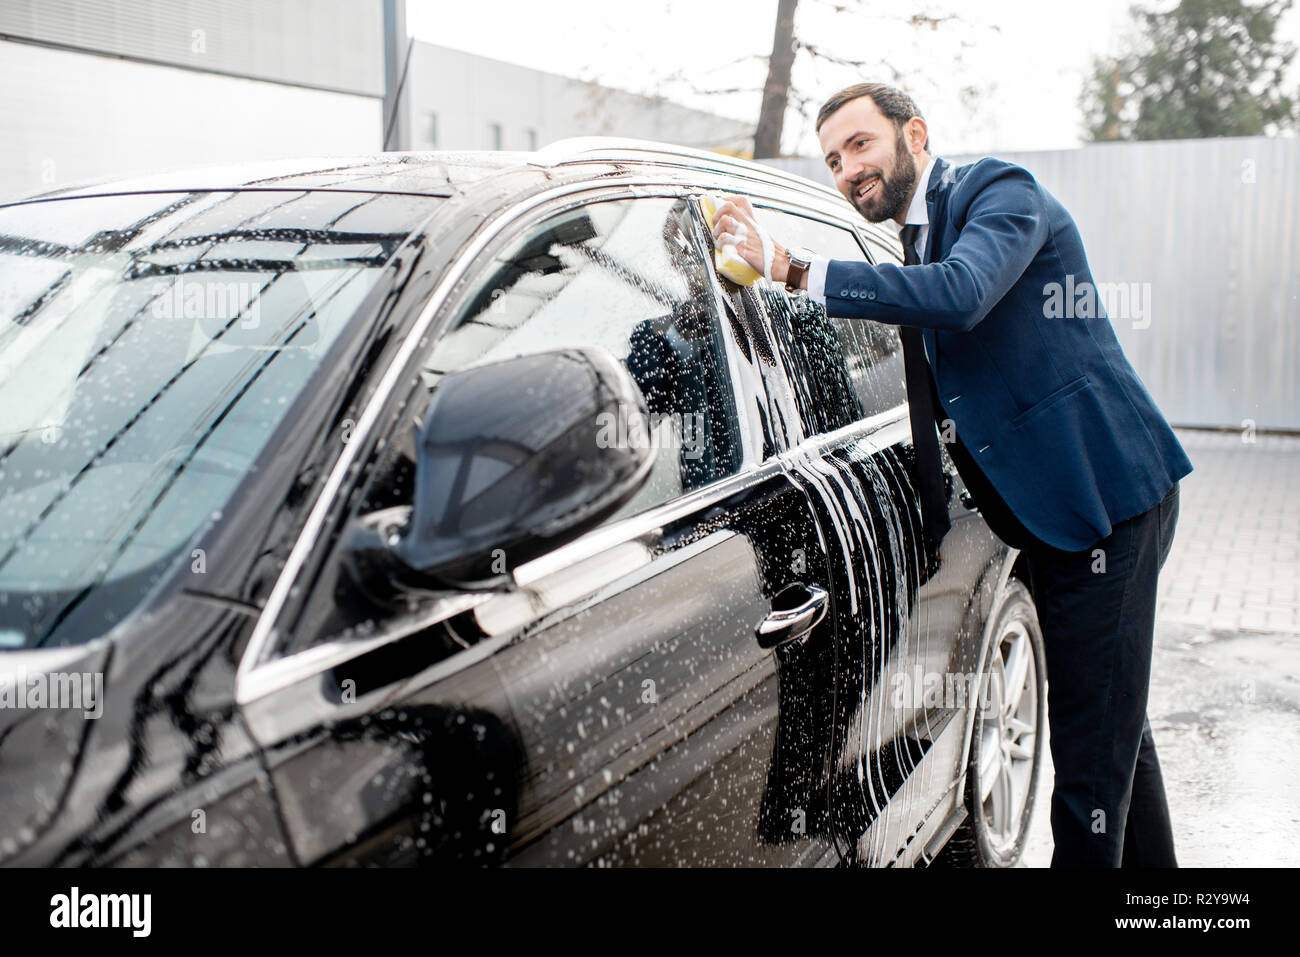 Elegant Businessman Dressed In The Suit Washing His Car With Yellow